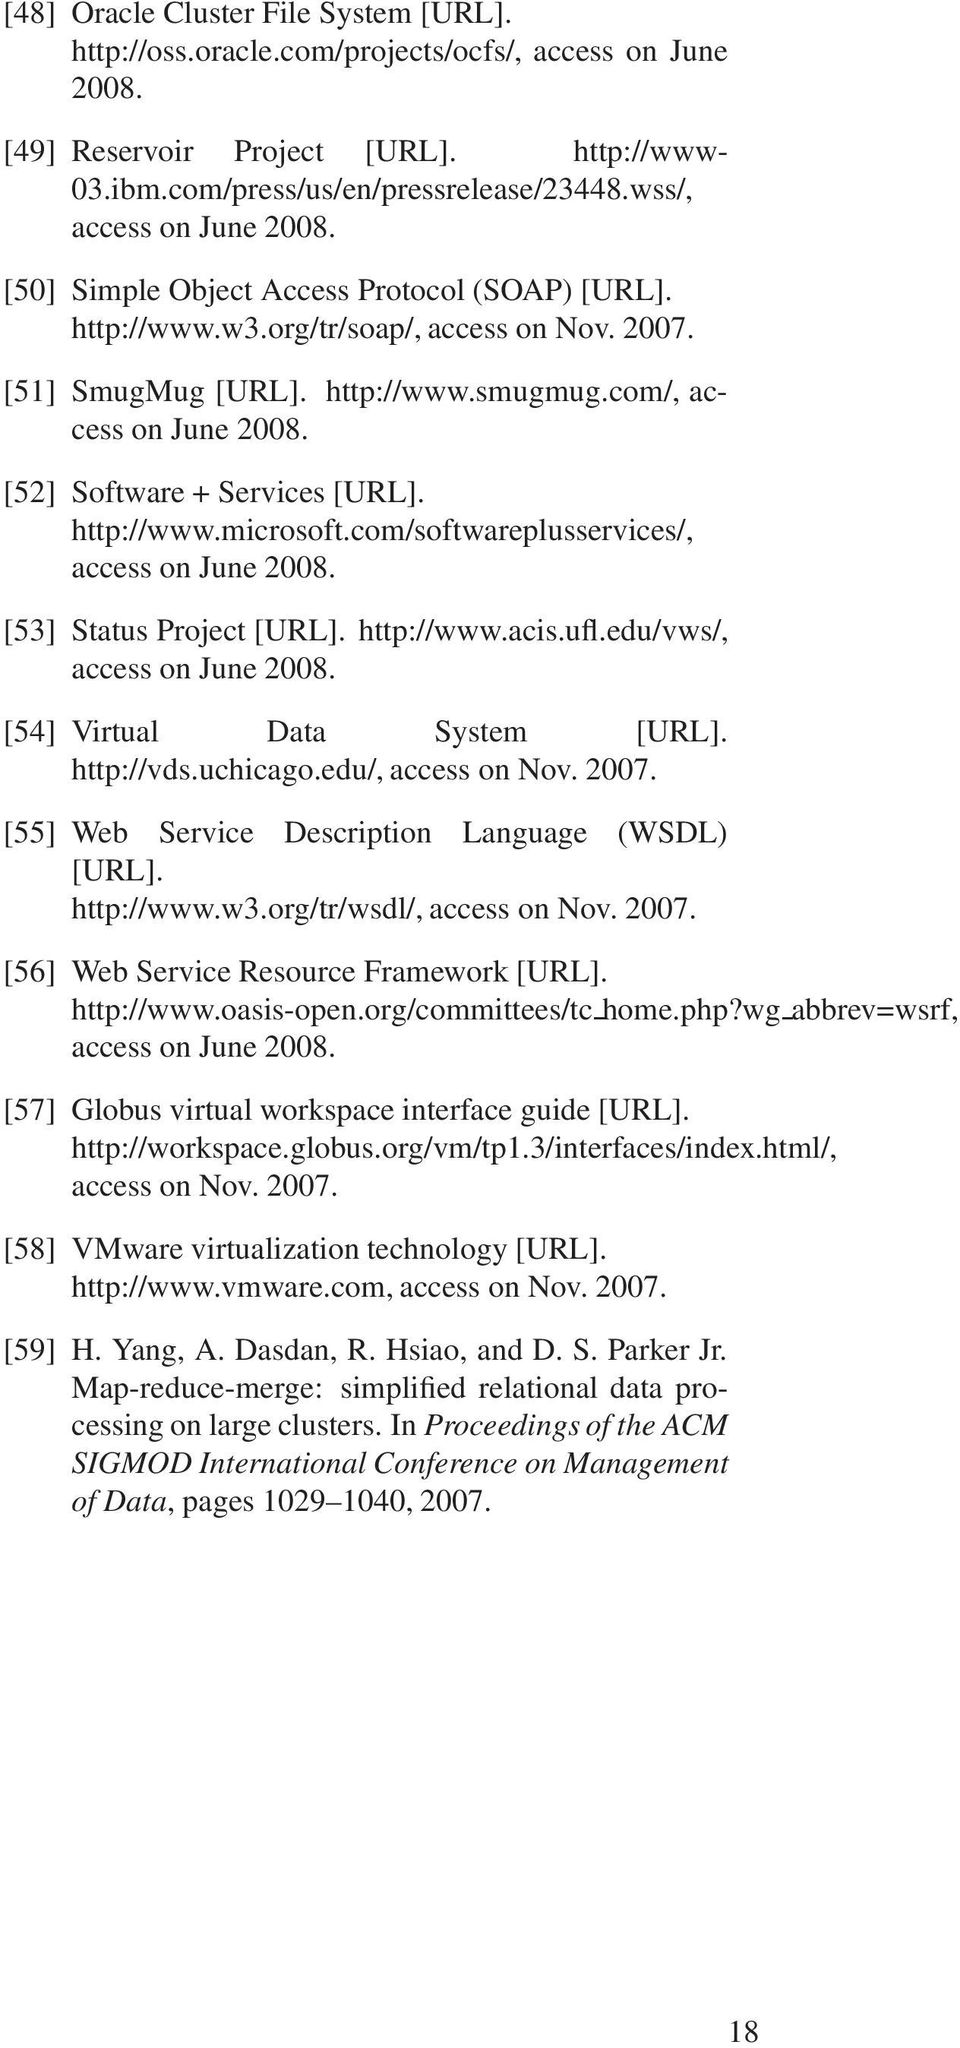 [52] Software + Services [URL]. http://www.microsoft.com/softwareplusservices/, access on June 2008. [53] Status Project [URL]. http://www.acis.ufl.edu/vws/, access on June 2008.